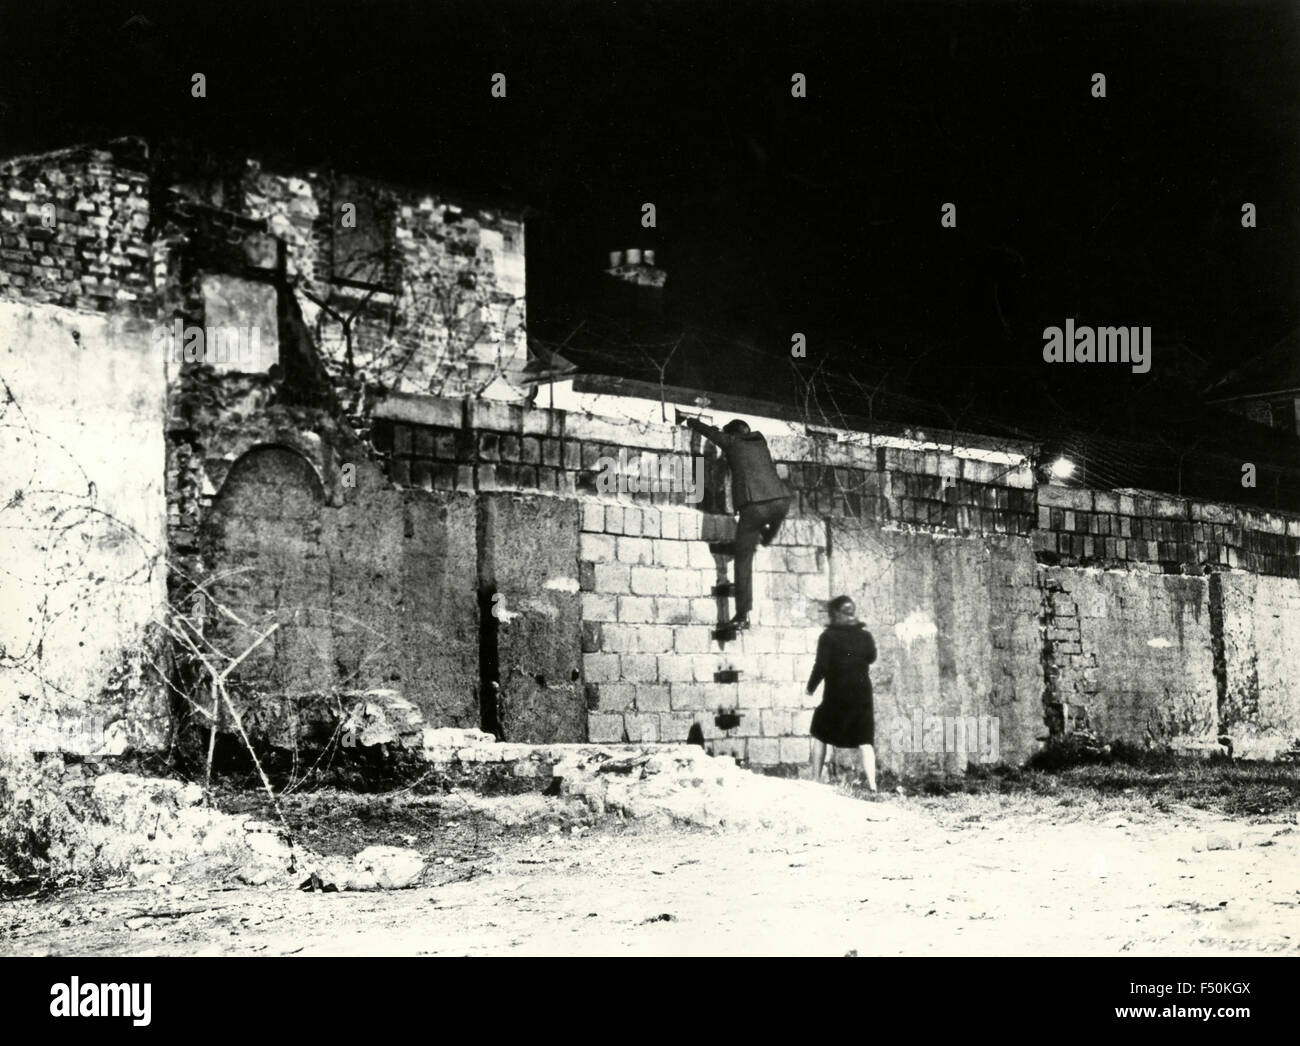 Scene of the Berlin Wall from the film 'The Spy Who Came in from the Cold' , UK 1963 - Stock Image